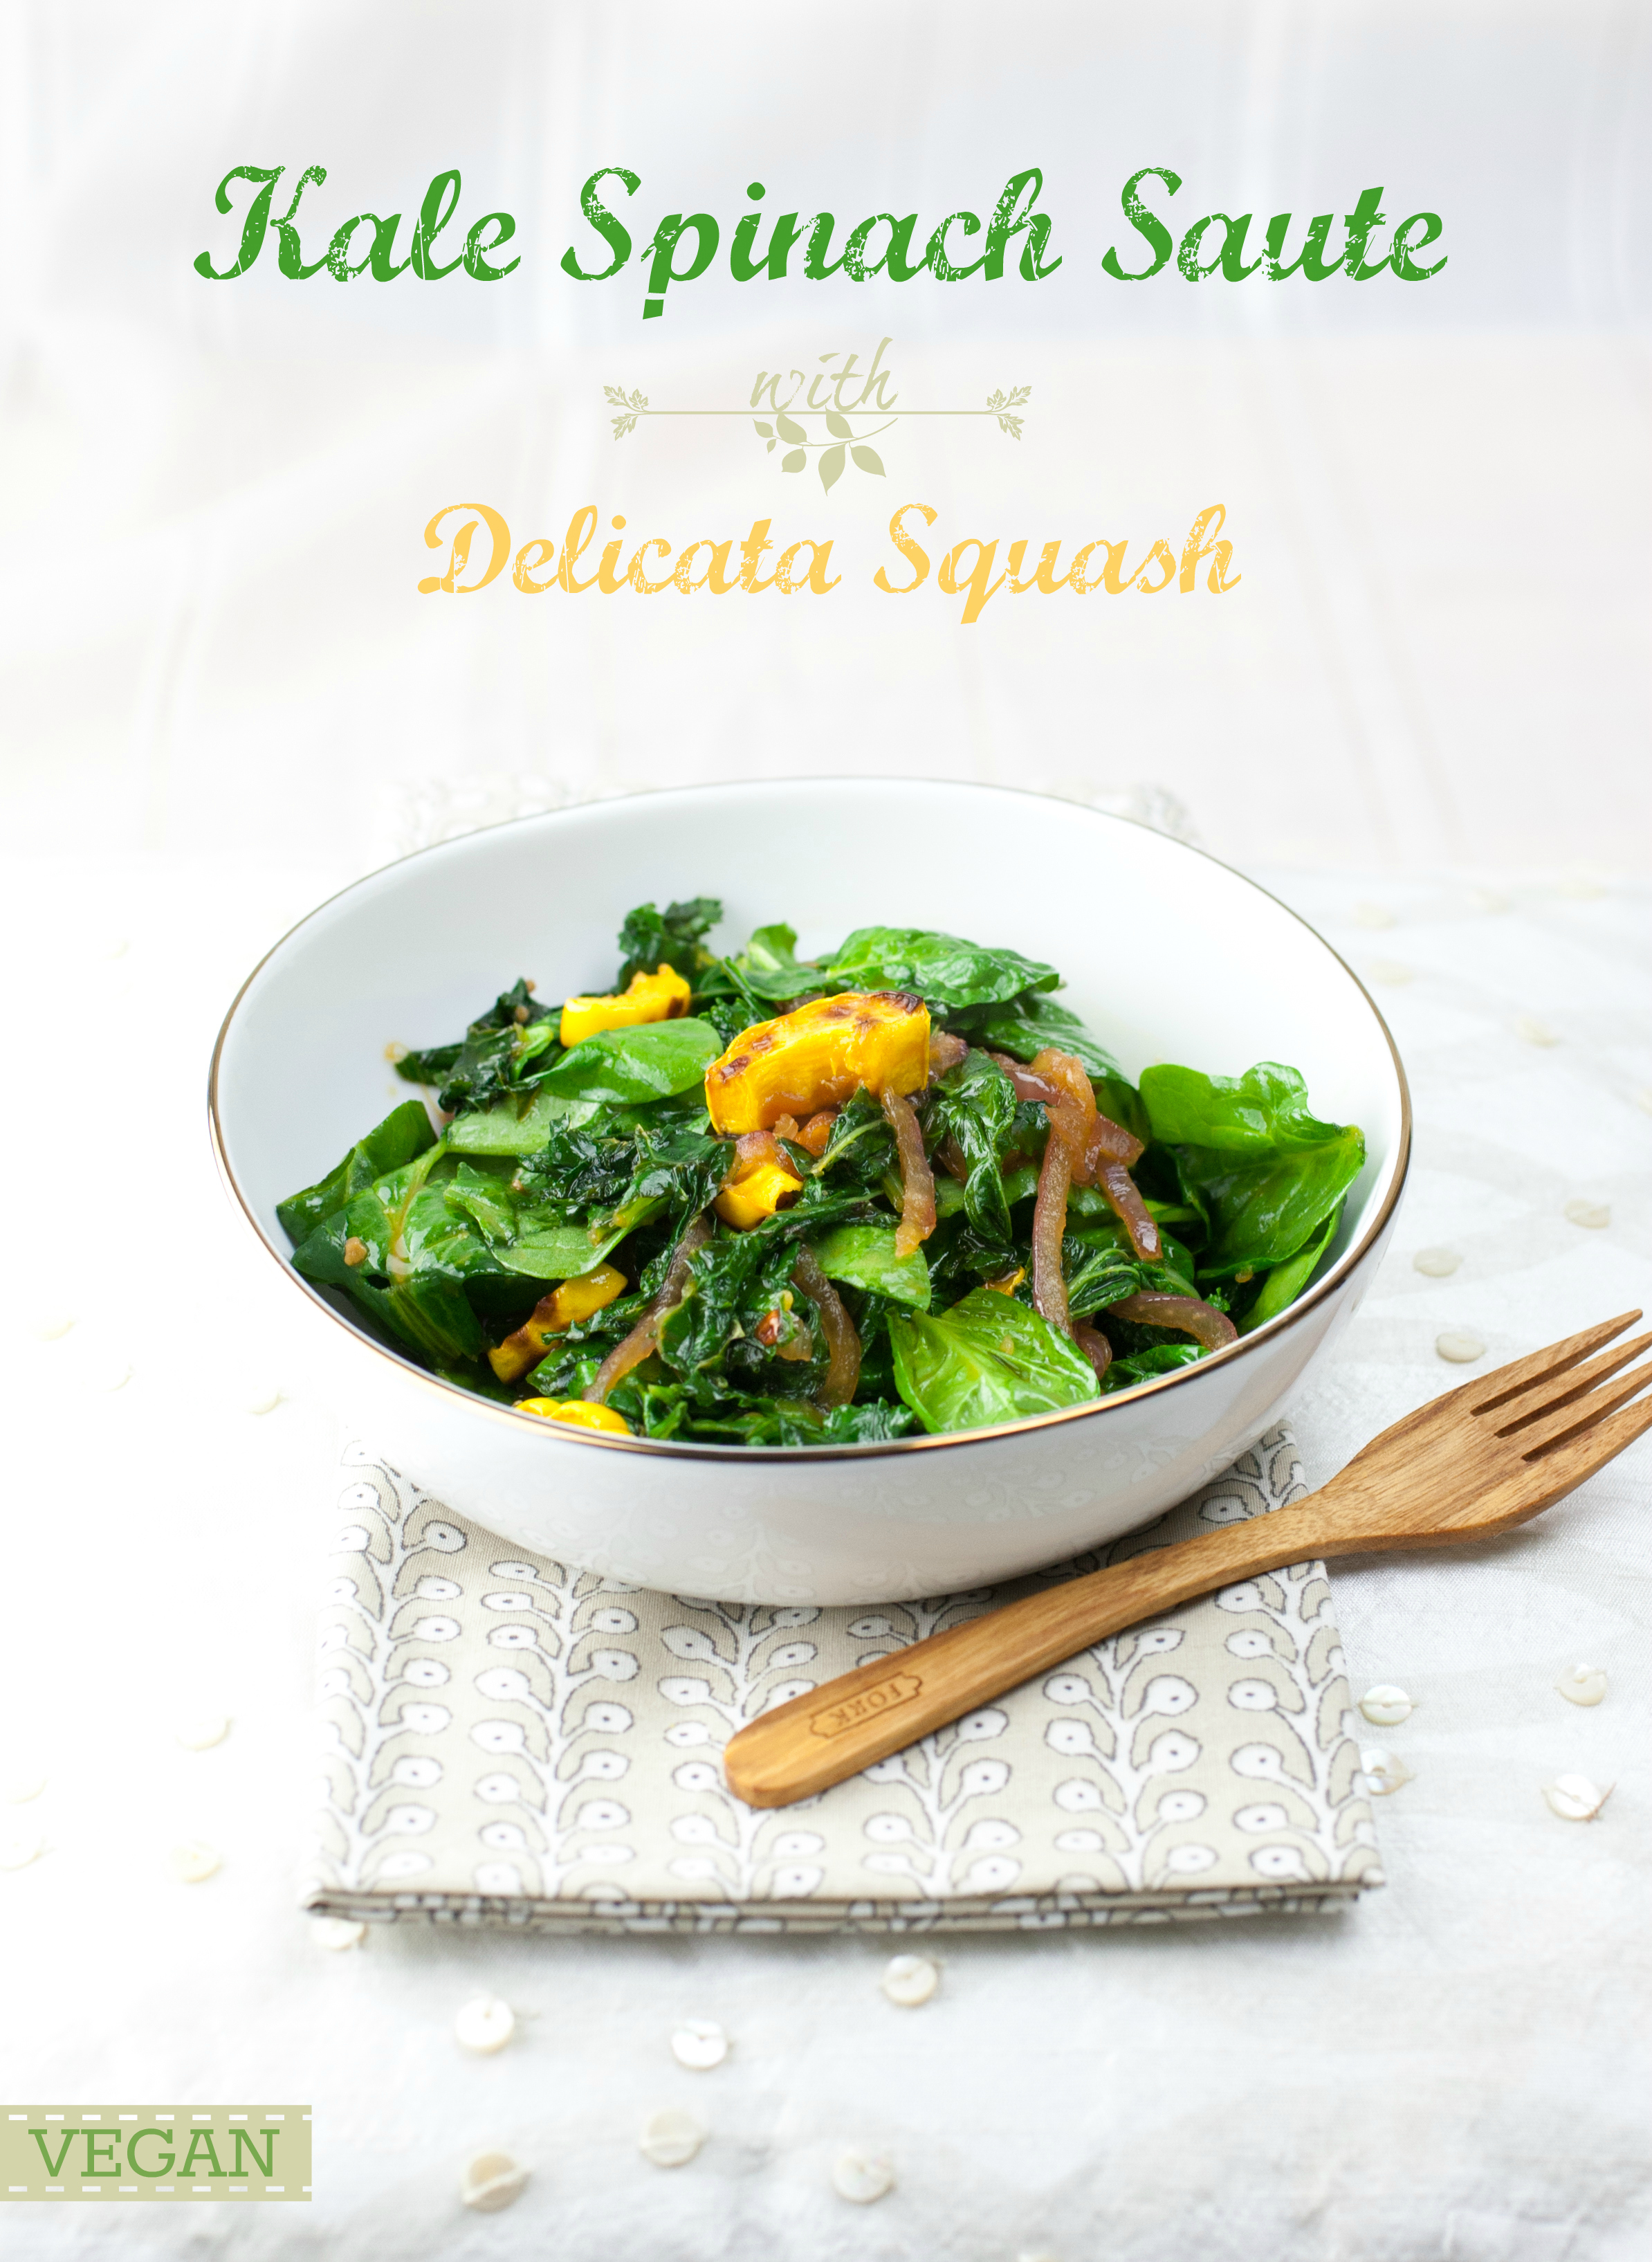 Produce On Parade - Kale and Spinach Saute with Delicata Squash